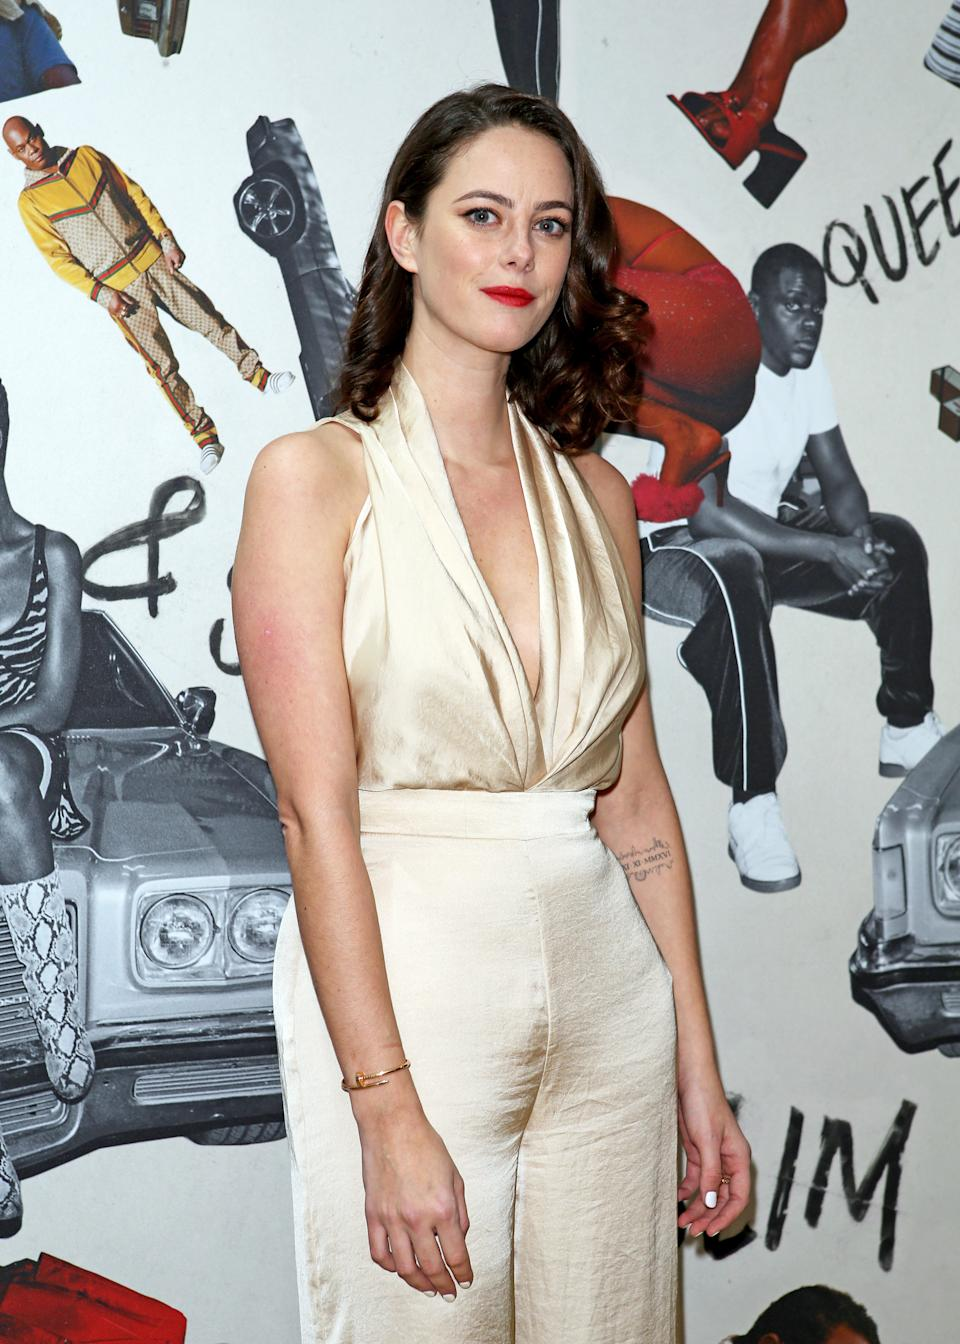 Kaya Scodelario attending the Queen & Slim premiere, at Rich Mix cinema, London.